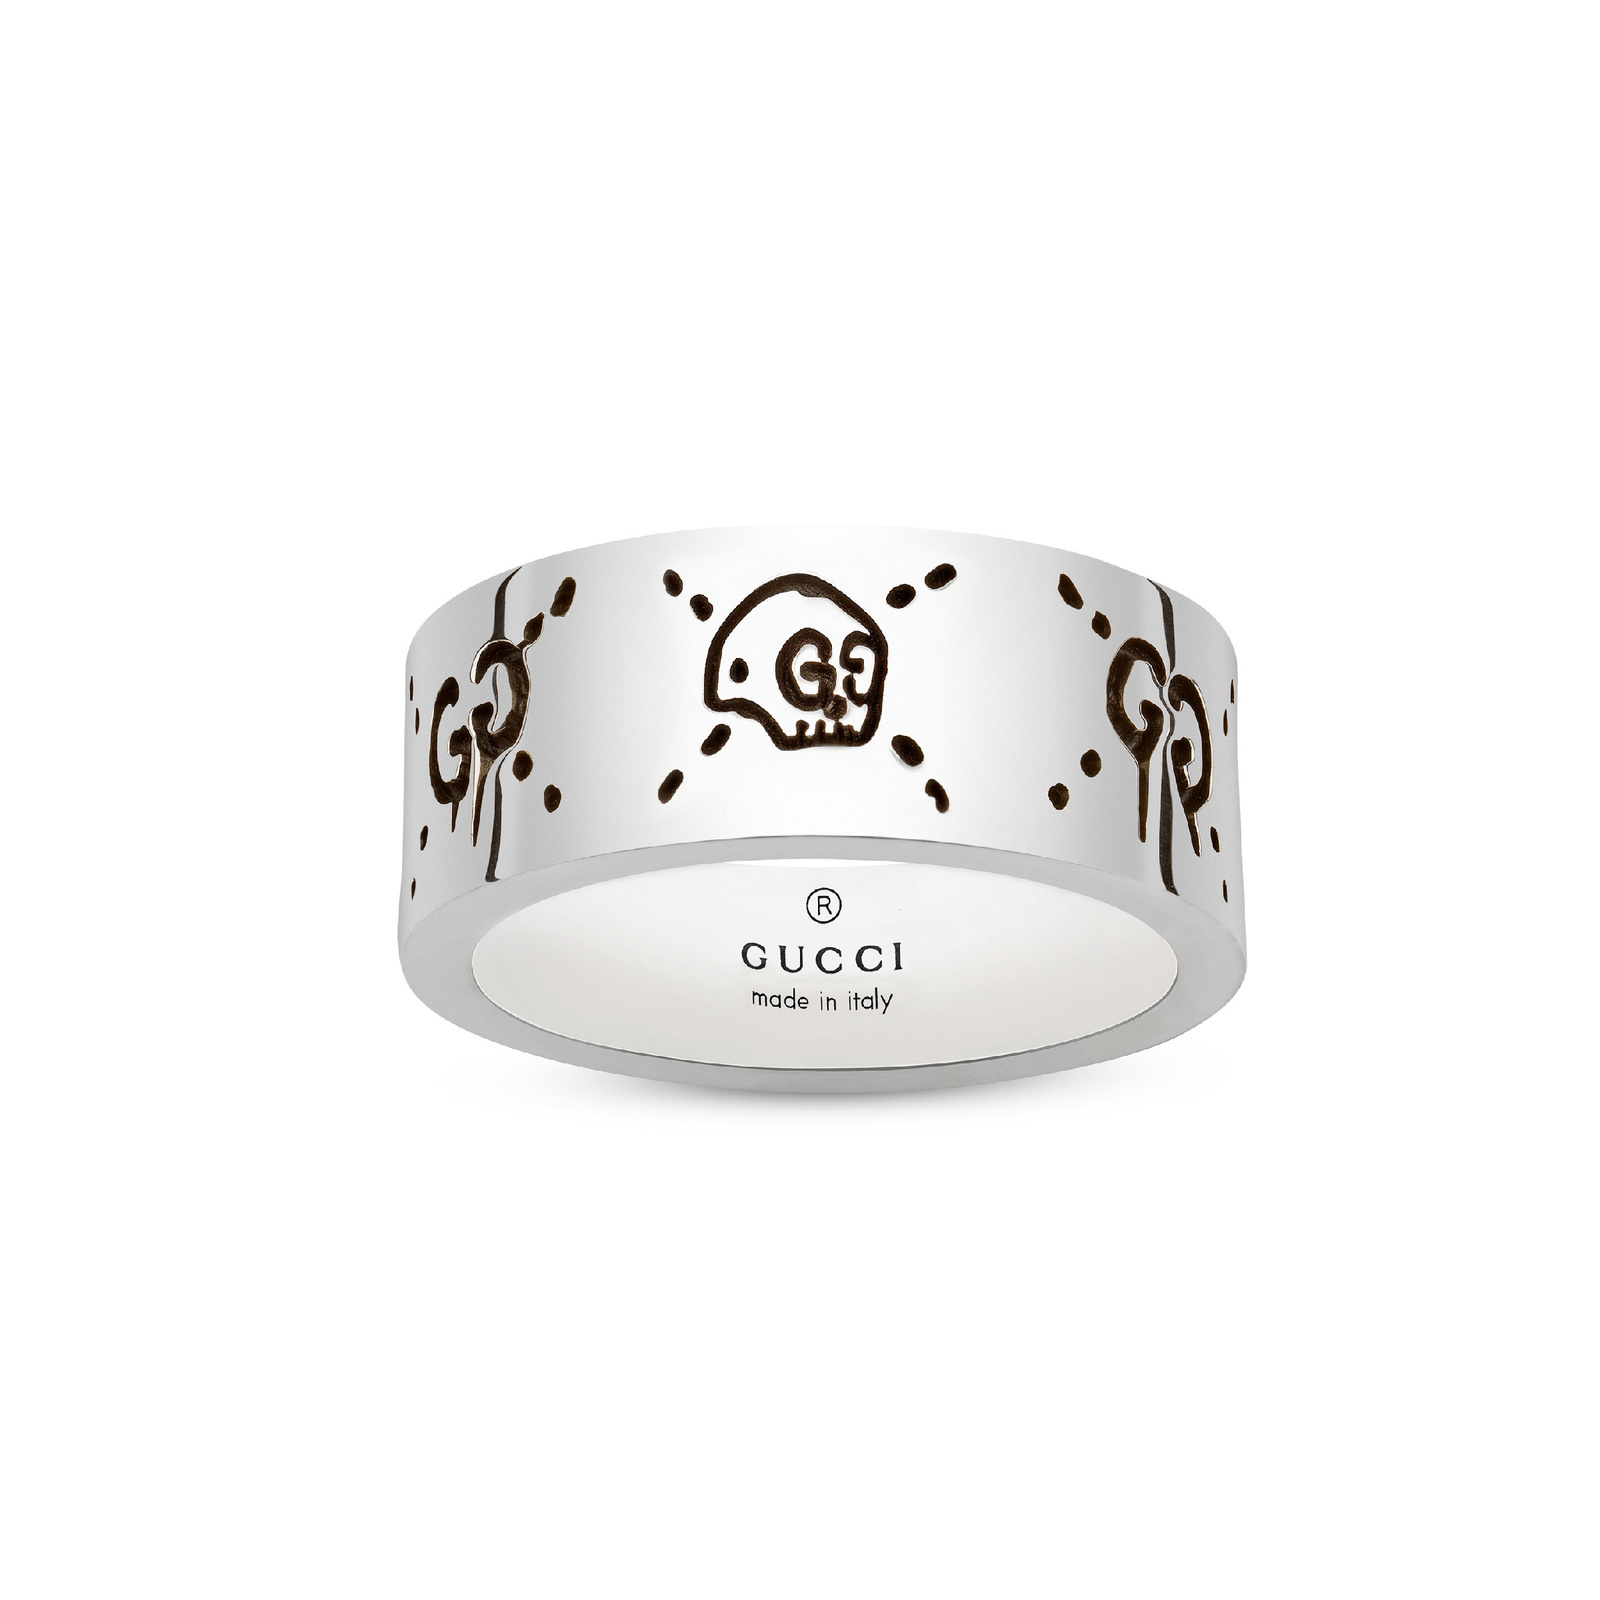 Gucci Ghost 9mm Ring in Silver - Ring Size L